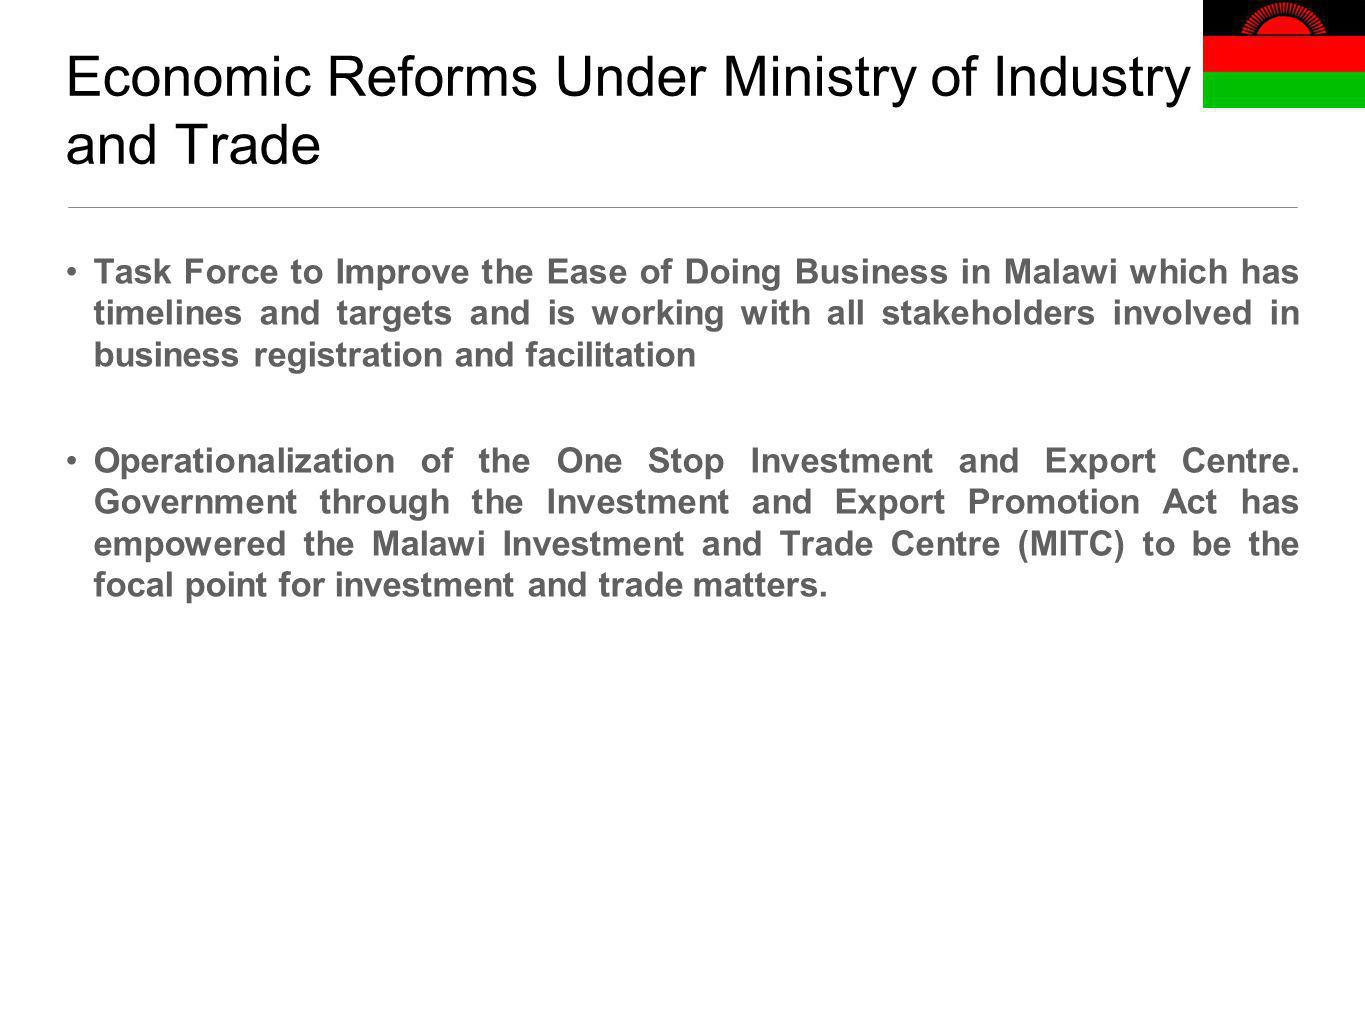 Economic Reforms Under Ministry of Industry and Trade Task Force to Improve the Ease of Doing Business in Malawi which has timelines and targets and is working with all stakeholders involved in business registration and facilitation Operationalization of the One Stop Investment and Export Centre.